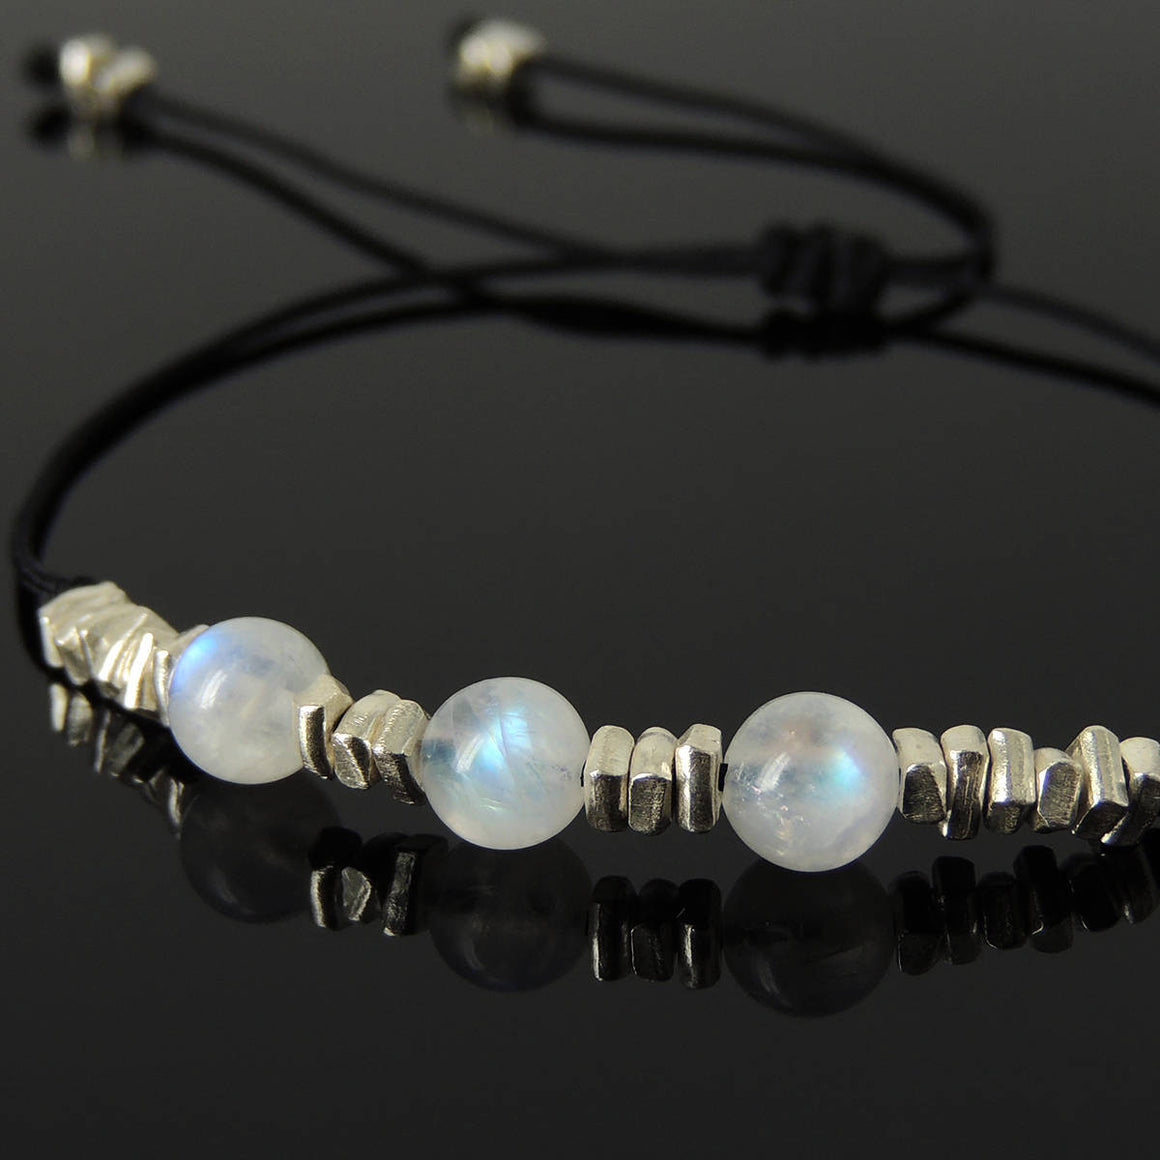 6mm Grade AA Moonstone Adjustable Braided Gemstone Bracelet with S925 Sterling Silver Nugget Beads - Handmade by Gem & Silver BR1121